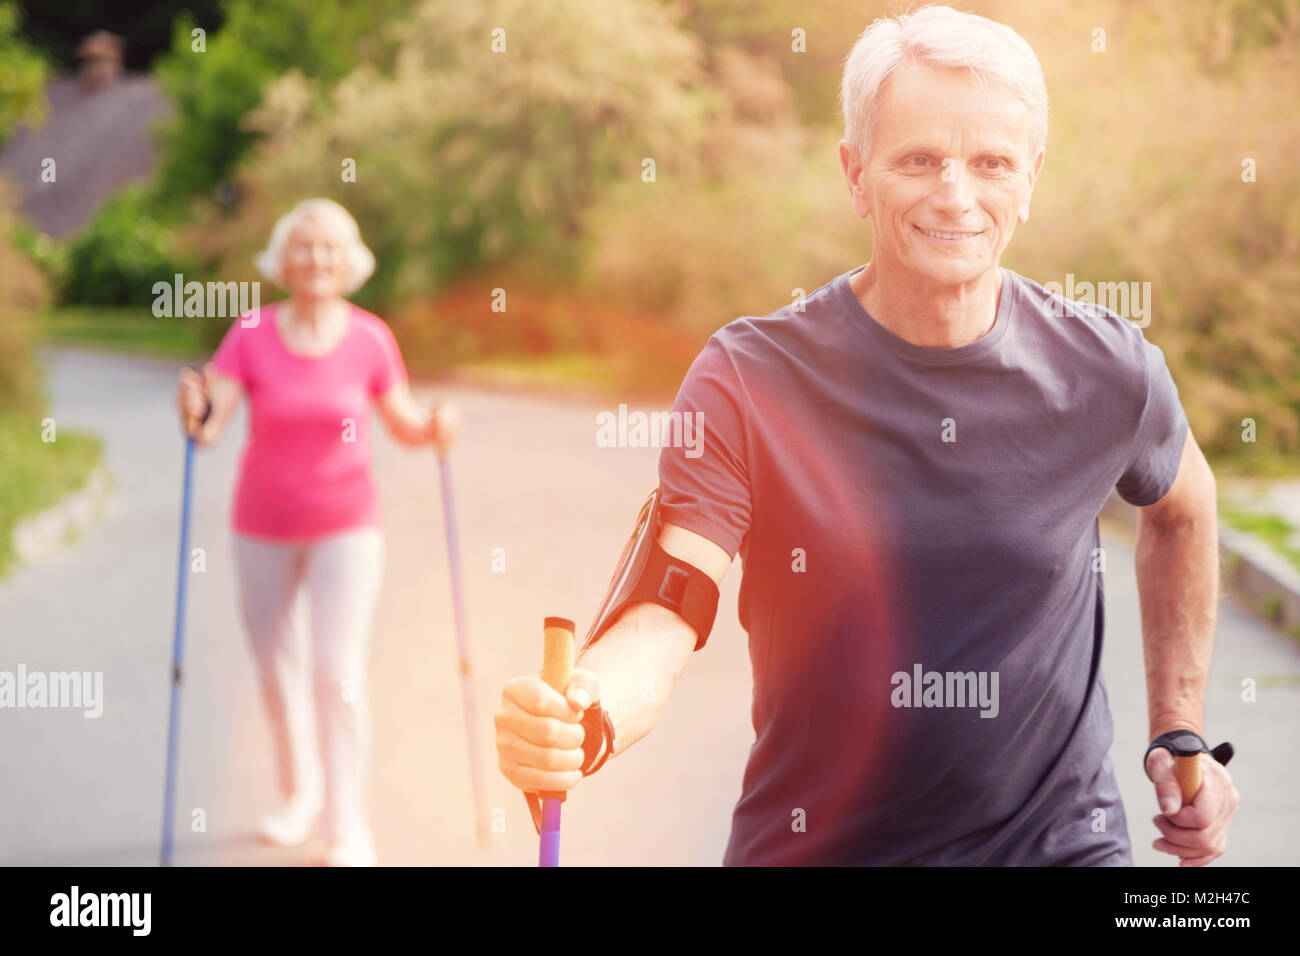 Waist up of enthusiastic elderly man with walking cane - Stock Image